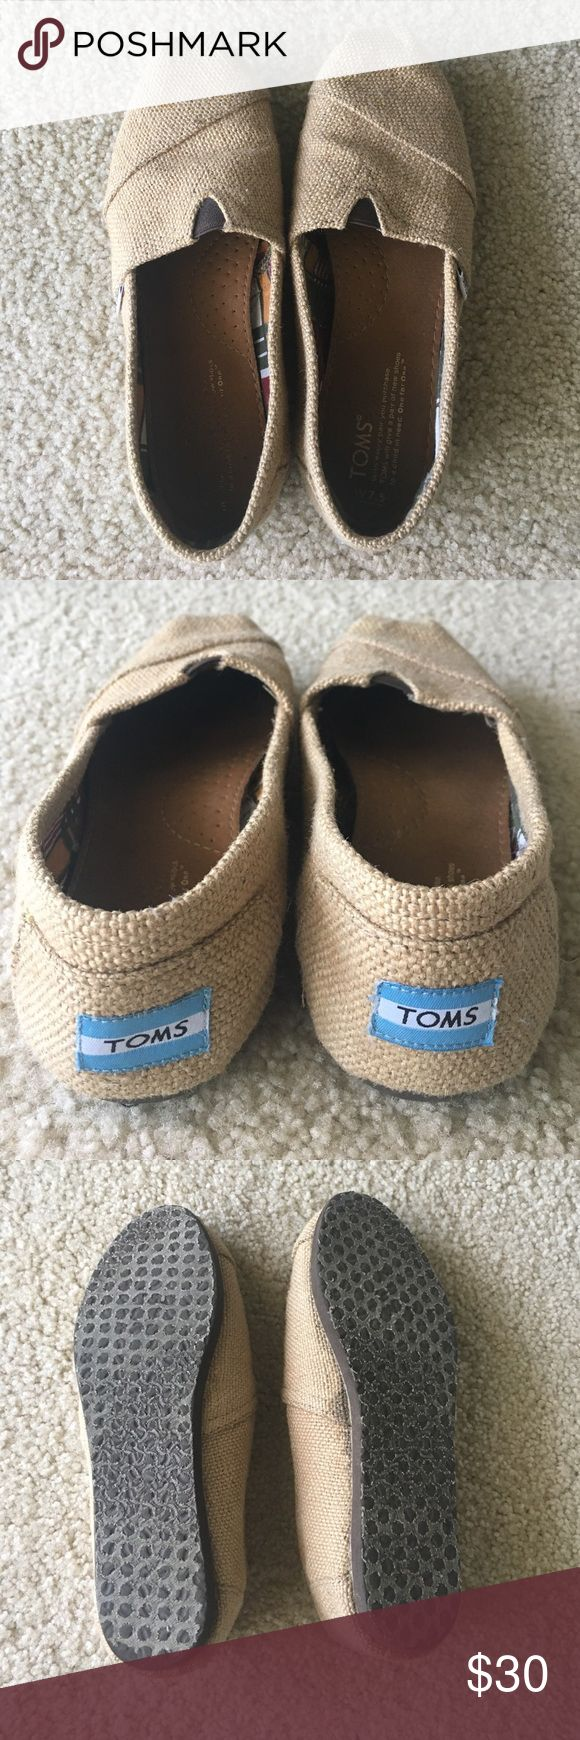 TOMS SHOES -- Burlap Gently used Burlap TOMS! Size 7.5 -- worn only a handful of times and do not smell or anything! TOMS Shoes